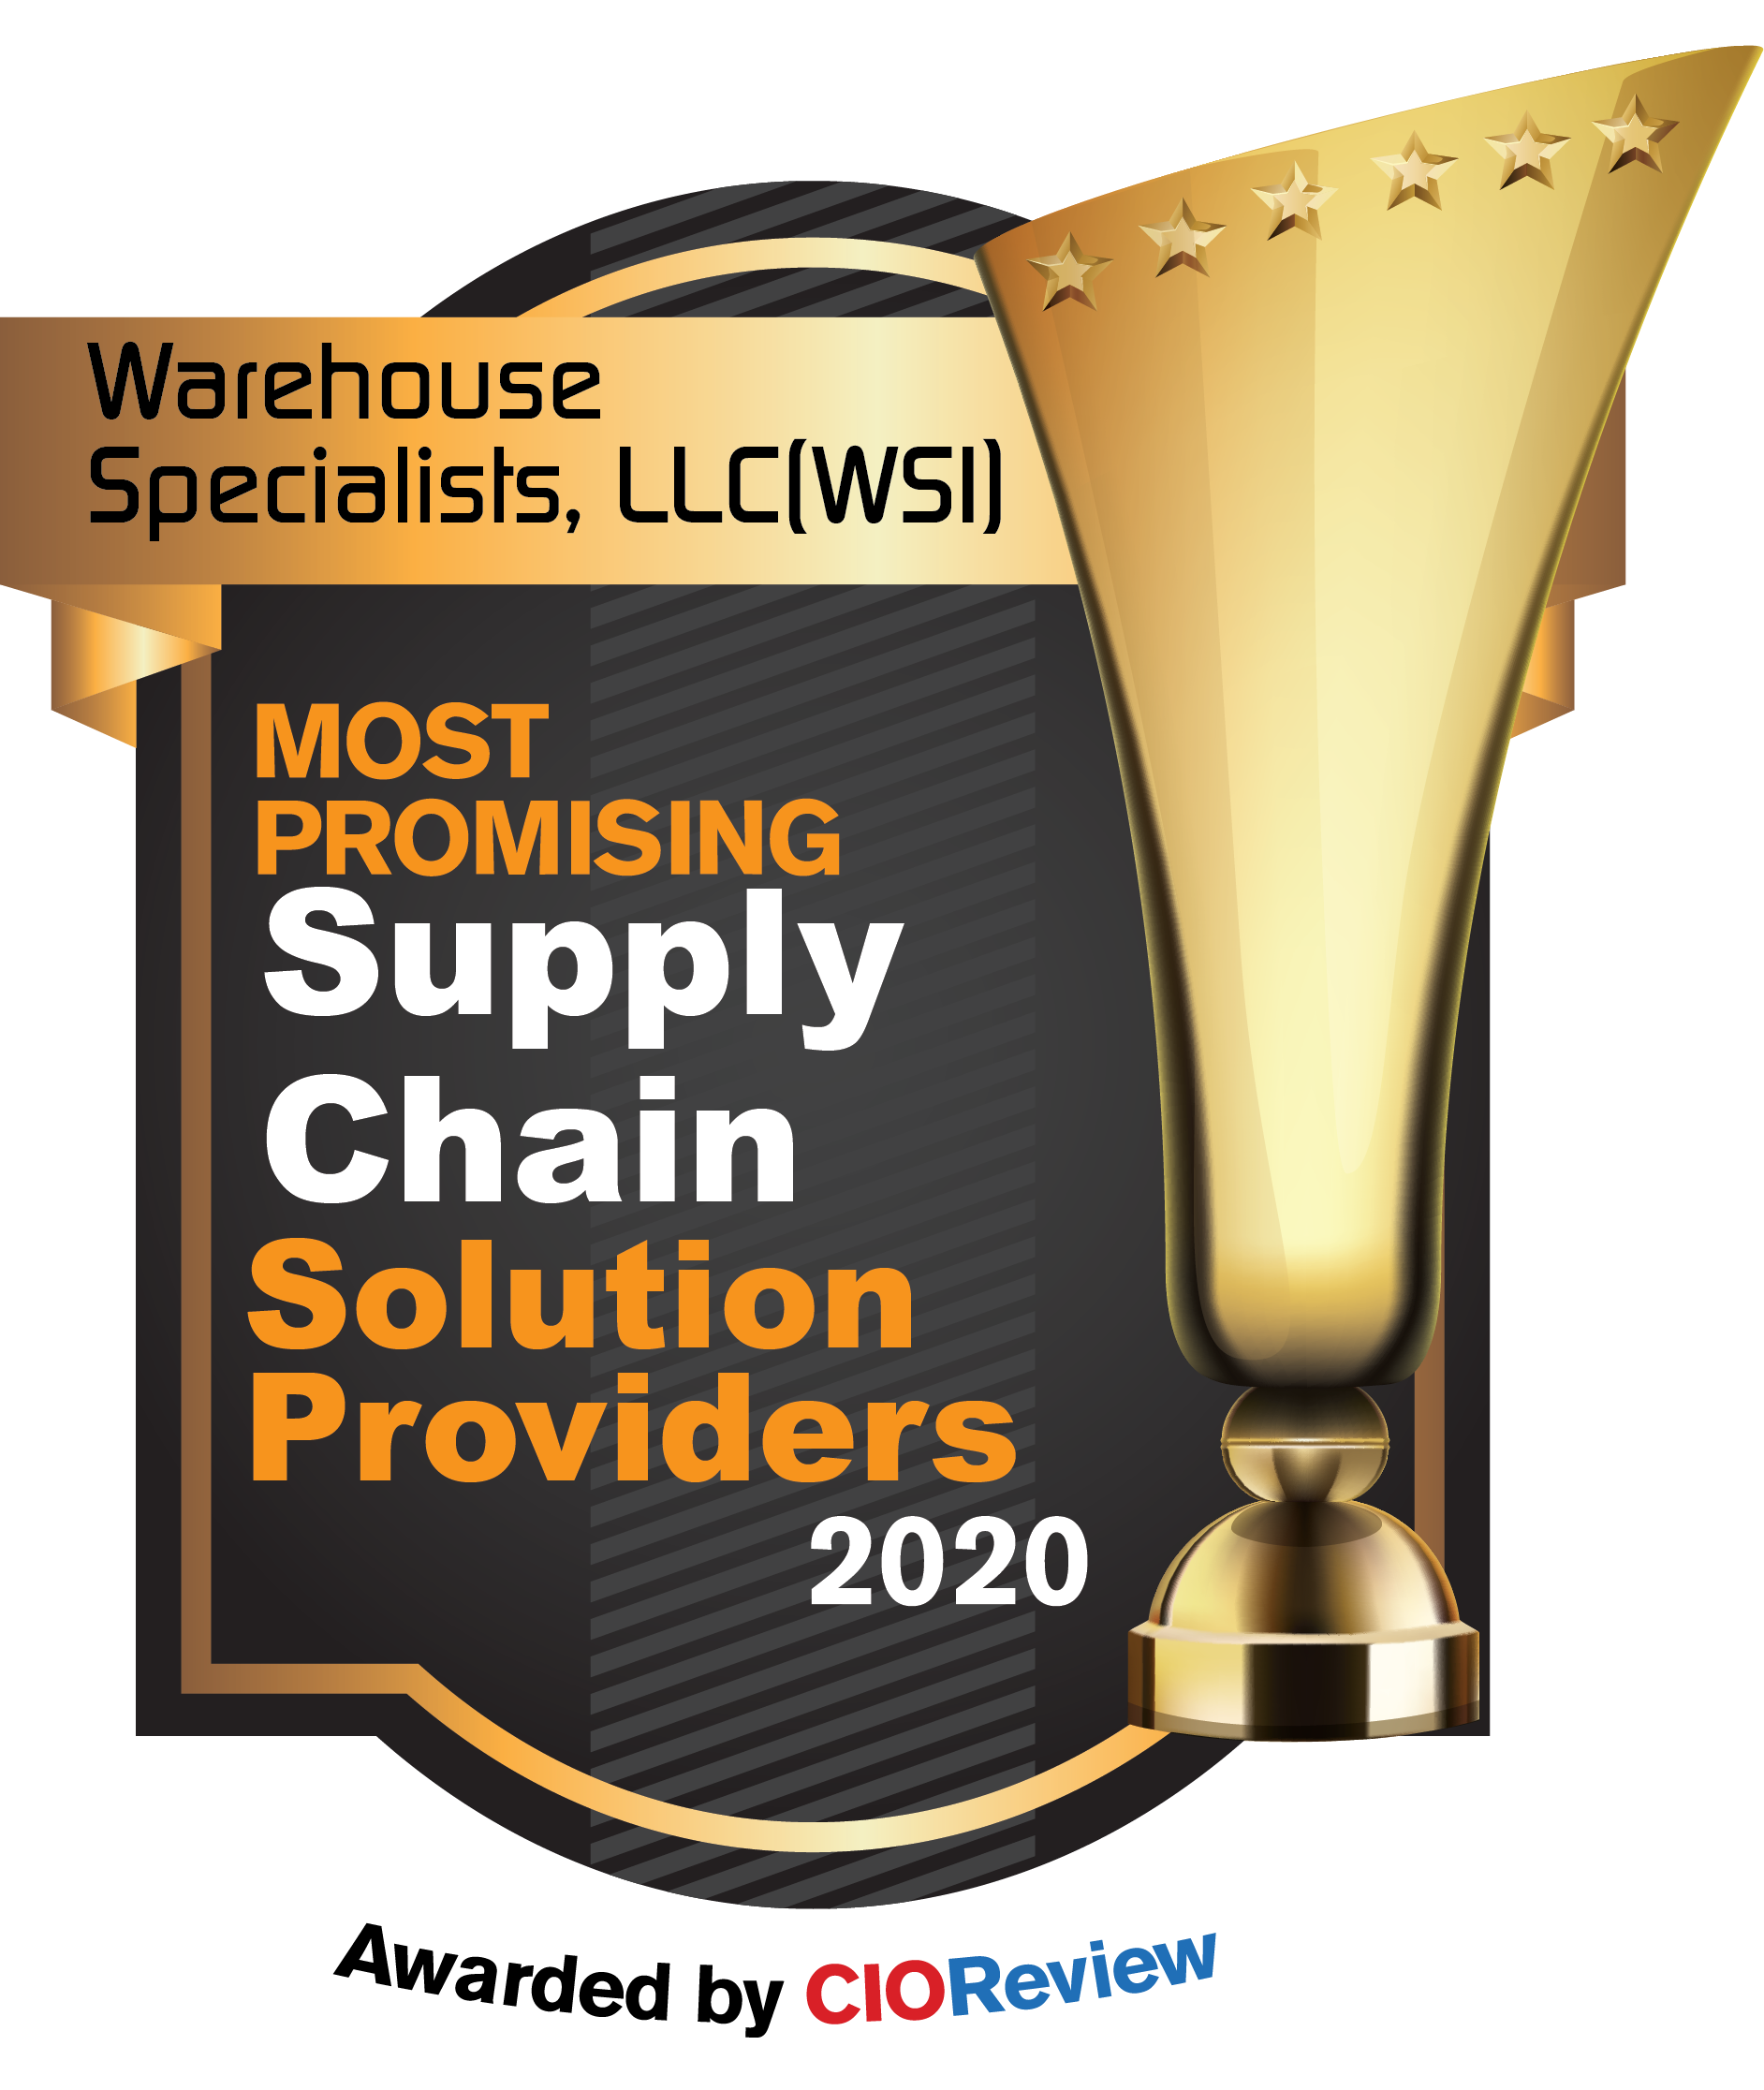 Top 20 Supply Chain Solution Companies - 2020